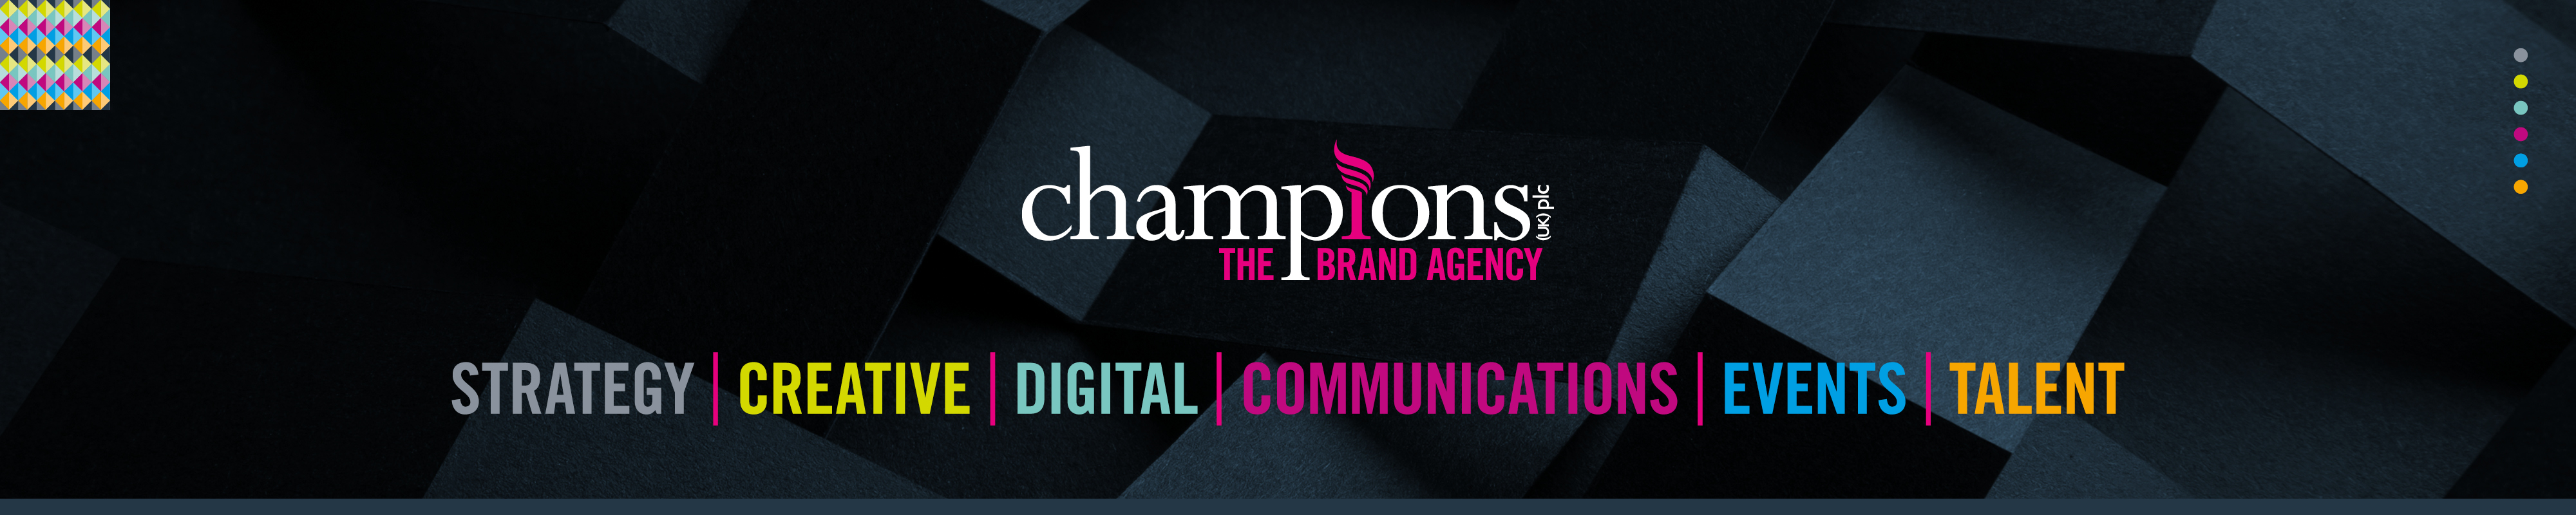 Strategy, Creative, Digital, Communications, Events, Talent